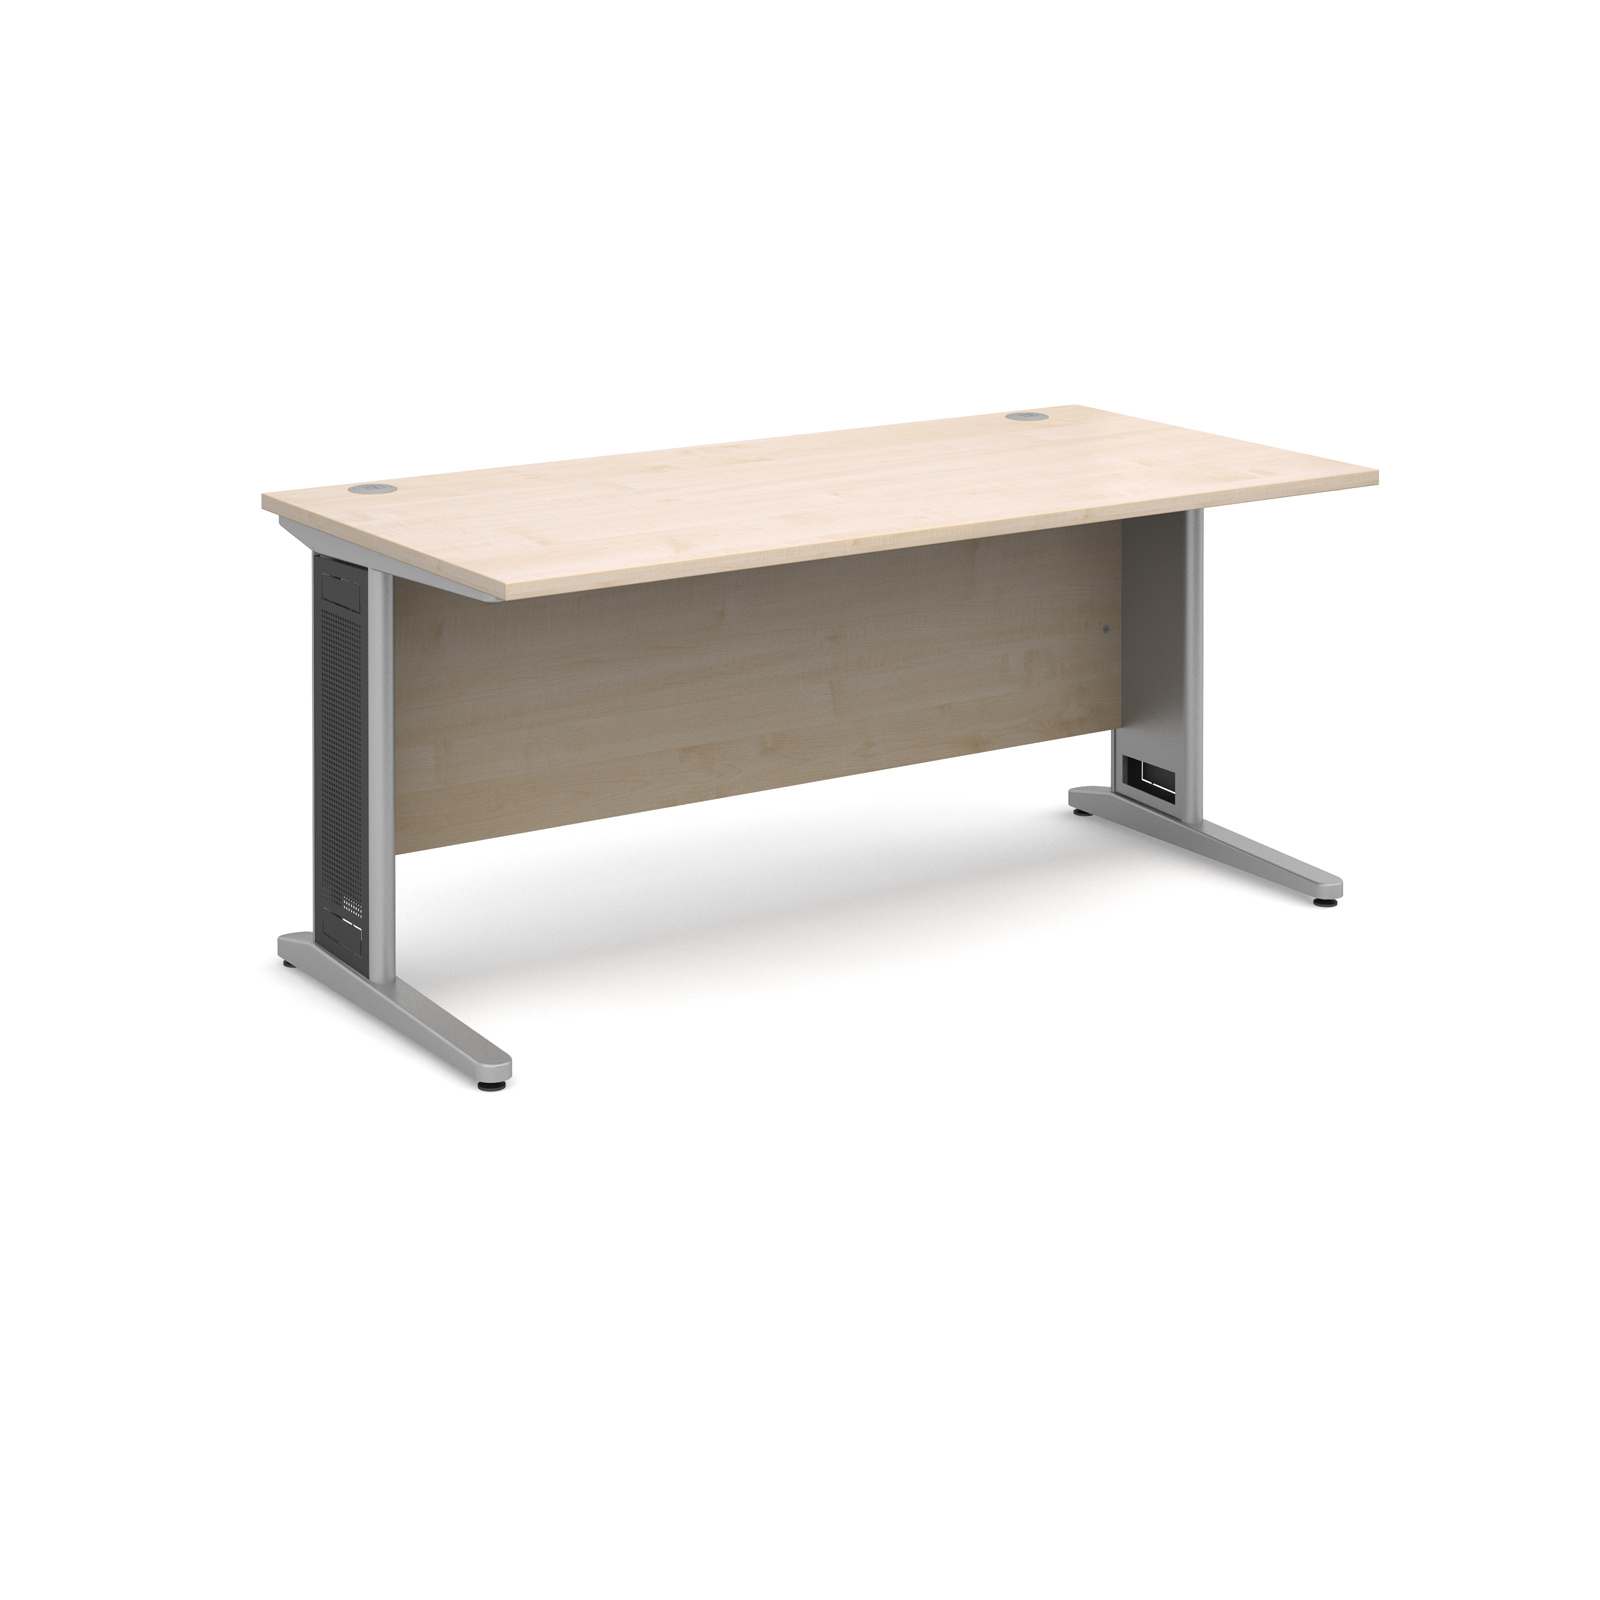 Largo straight desk 1600mm x 800mm - silver cantilever frame with removable grill, maple top